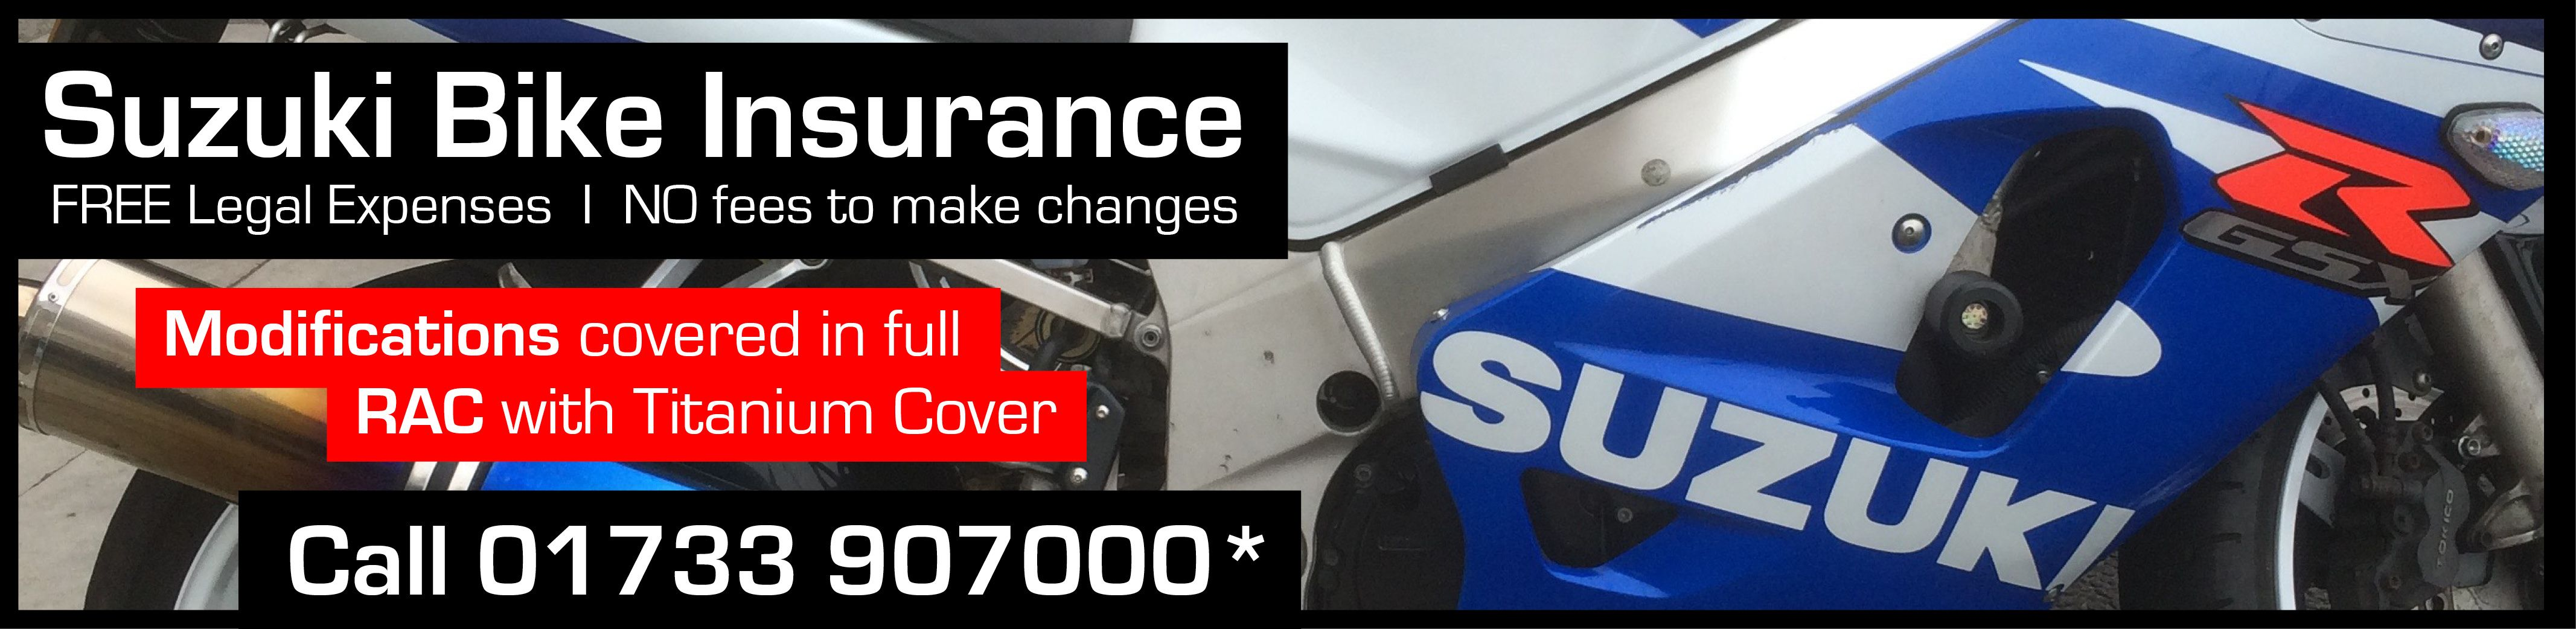 Suzuki-Bike-Insurance